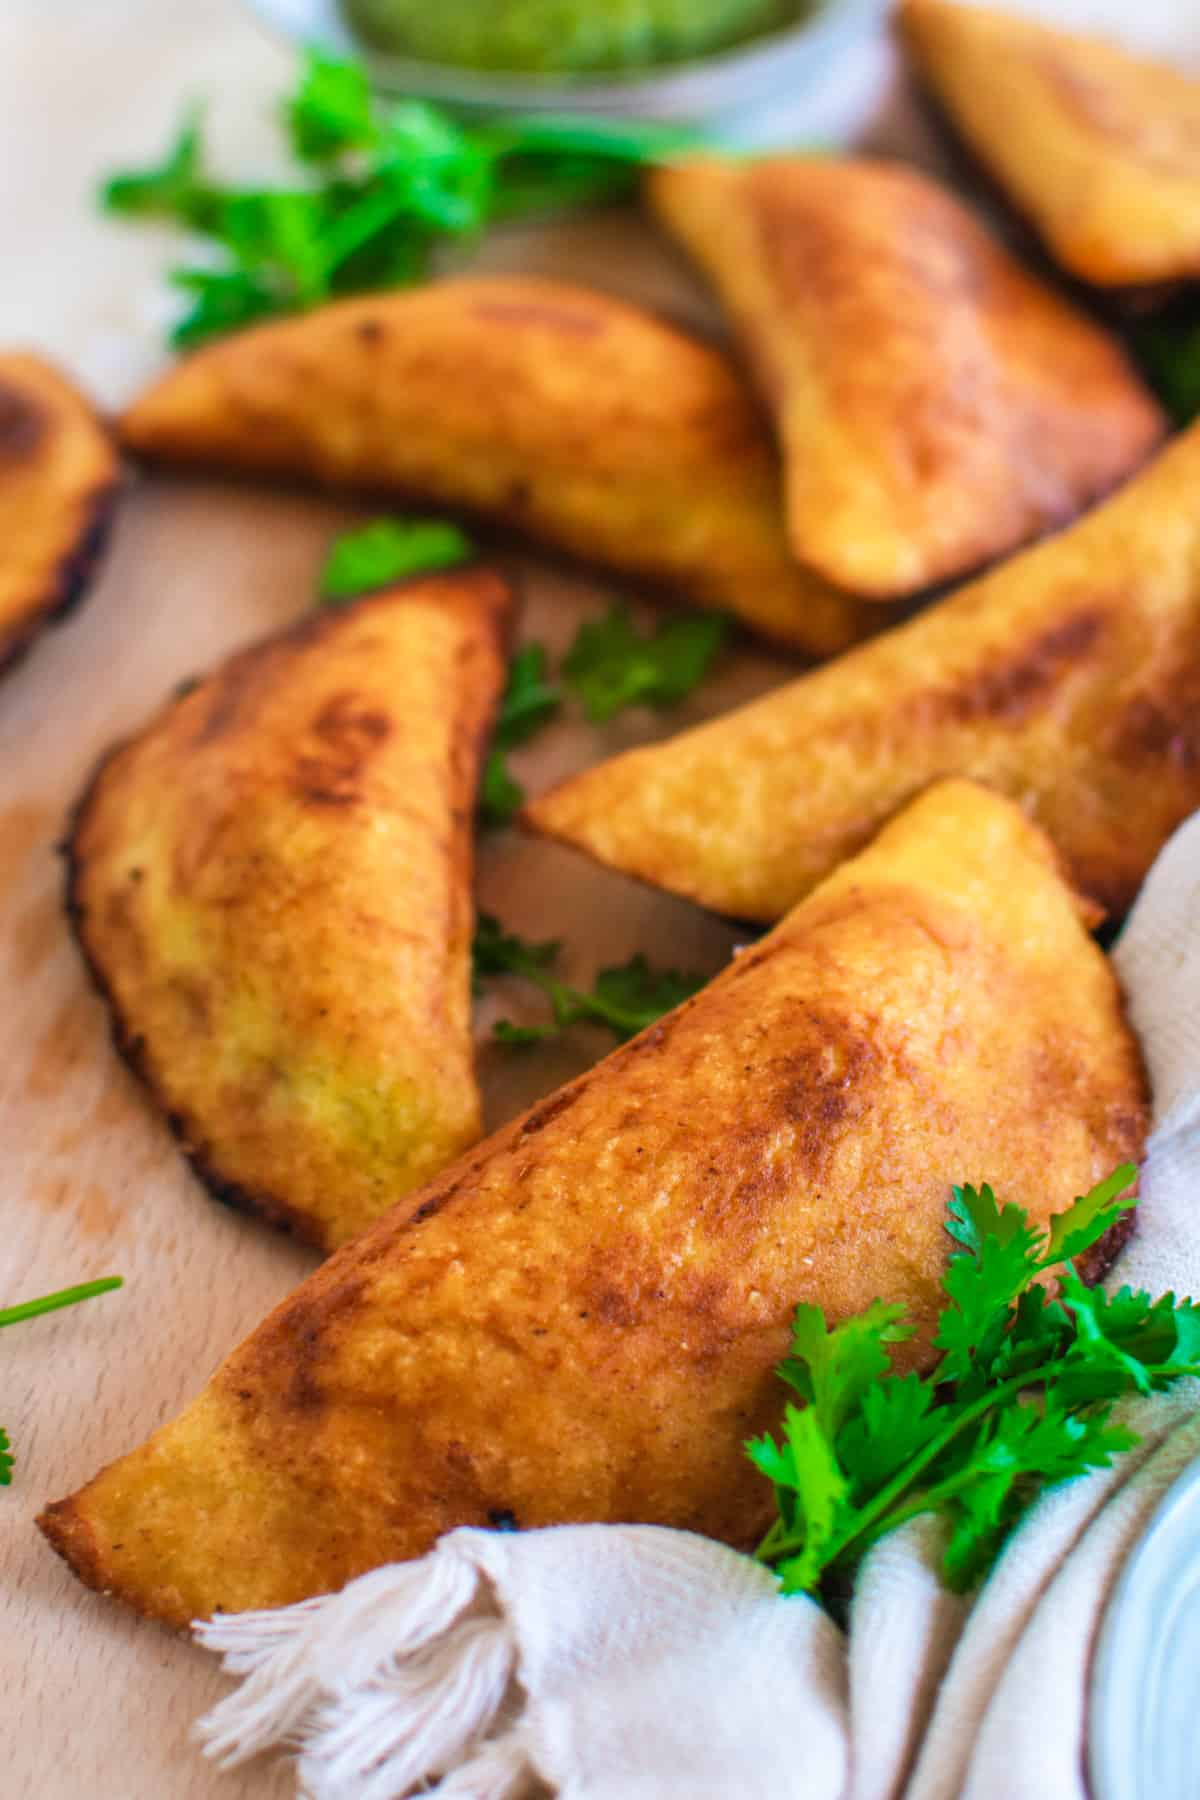 A close up of a Venezuelan empanada garnished with coriander.